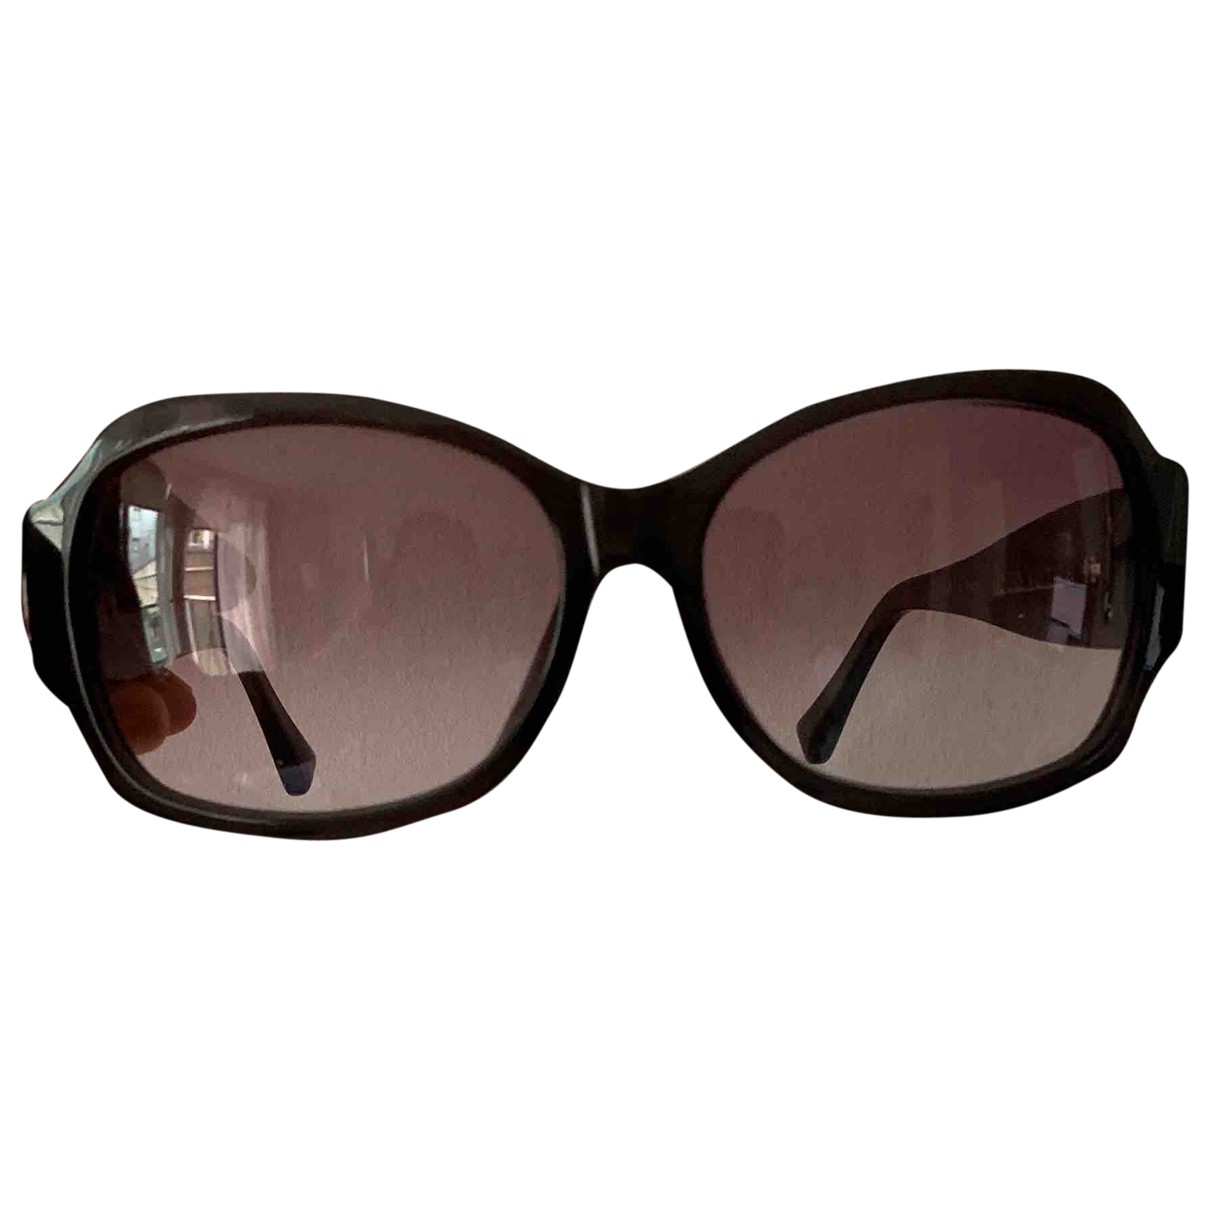 Gafas oversize Louis Vuitton